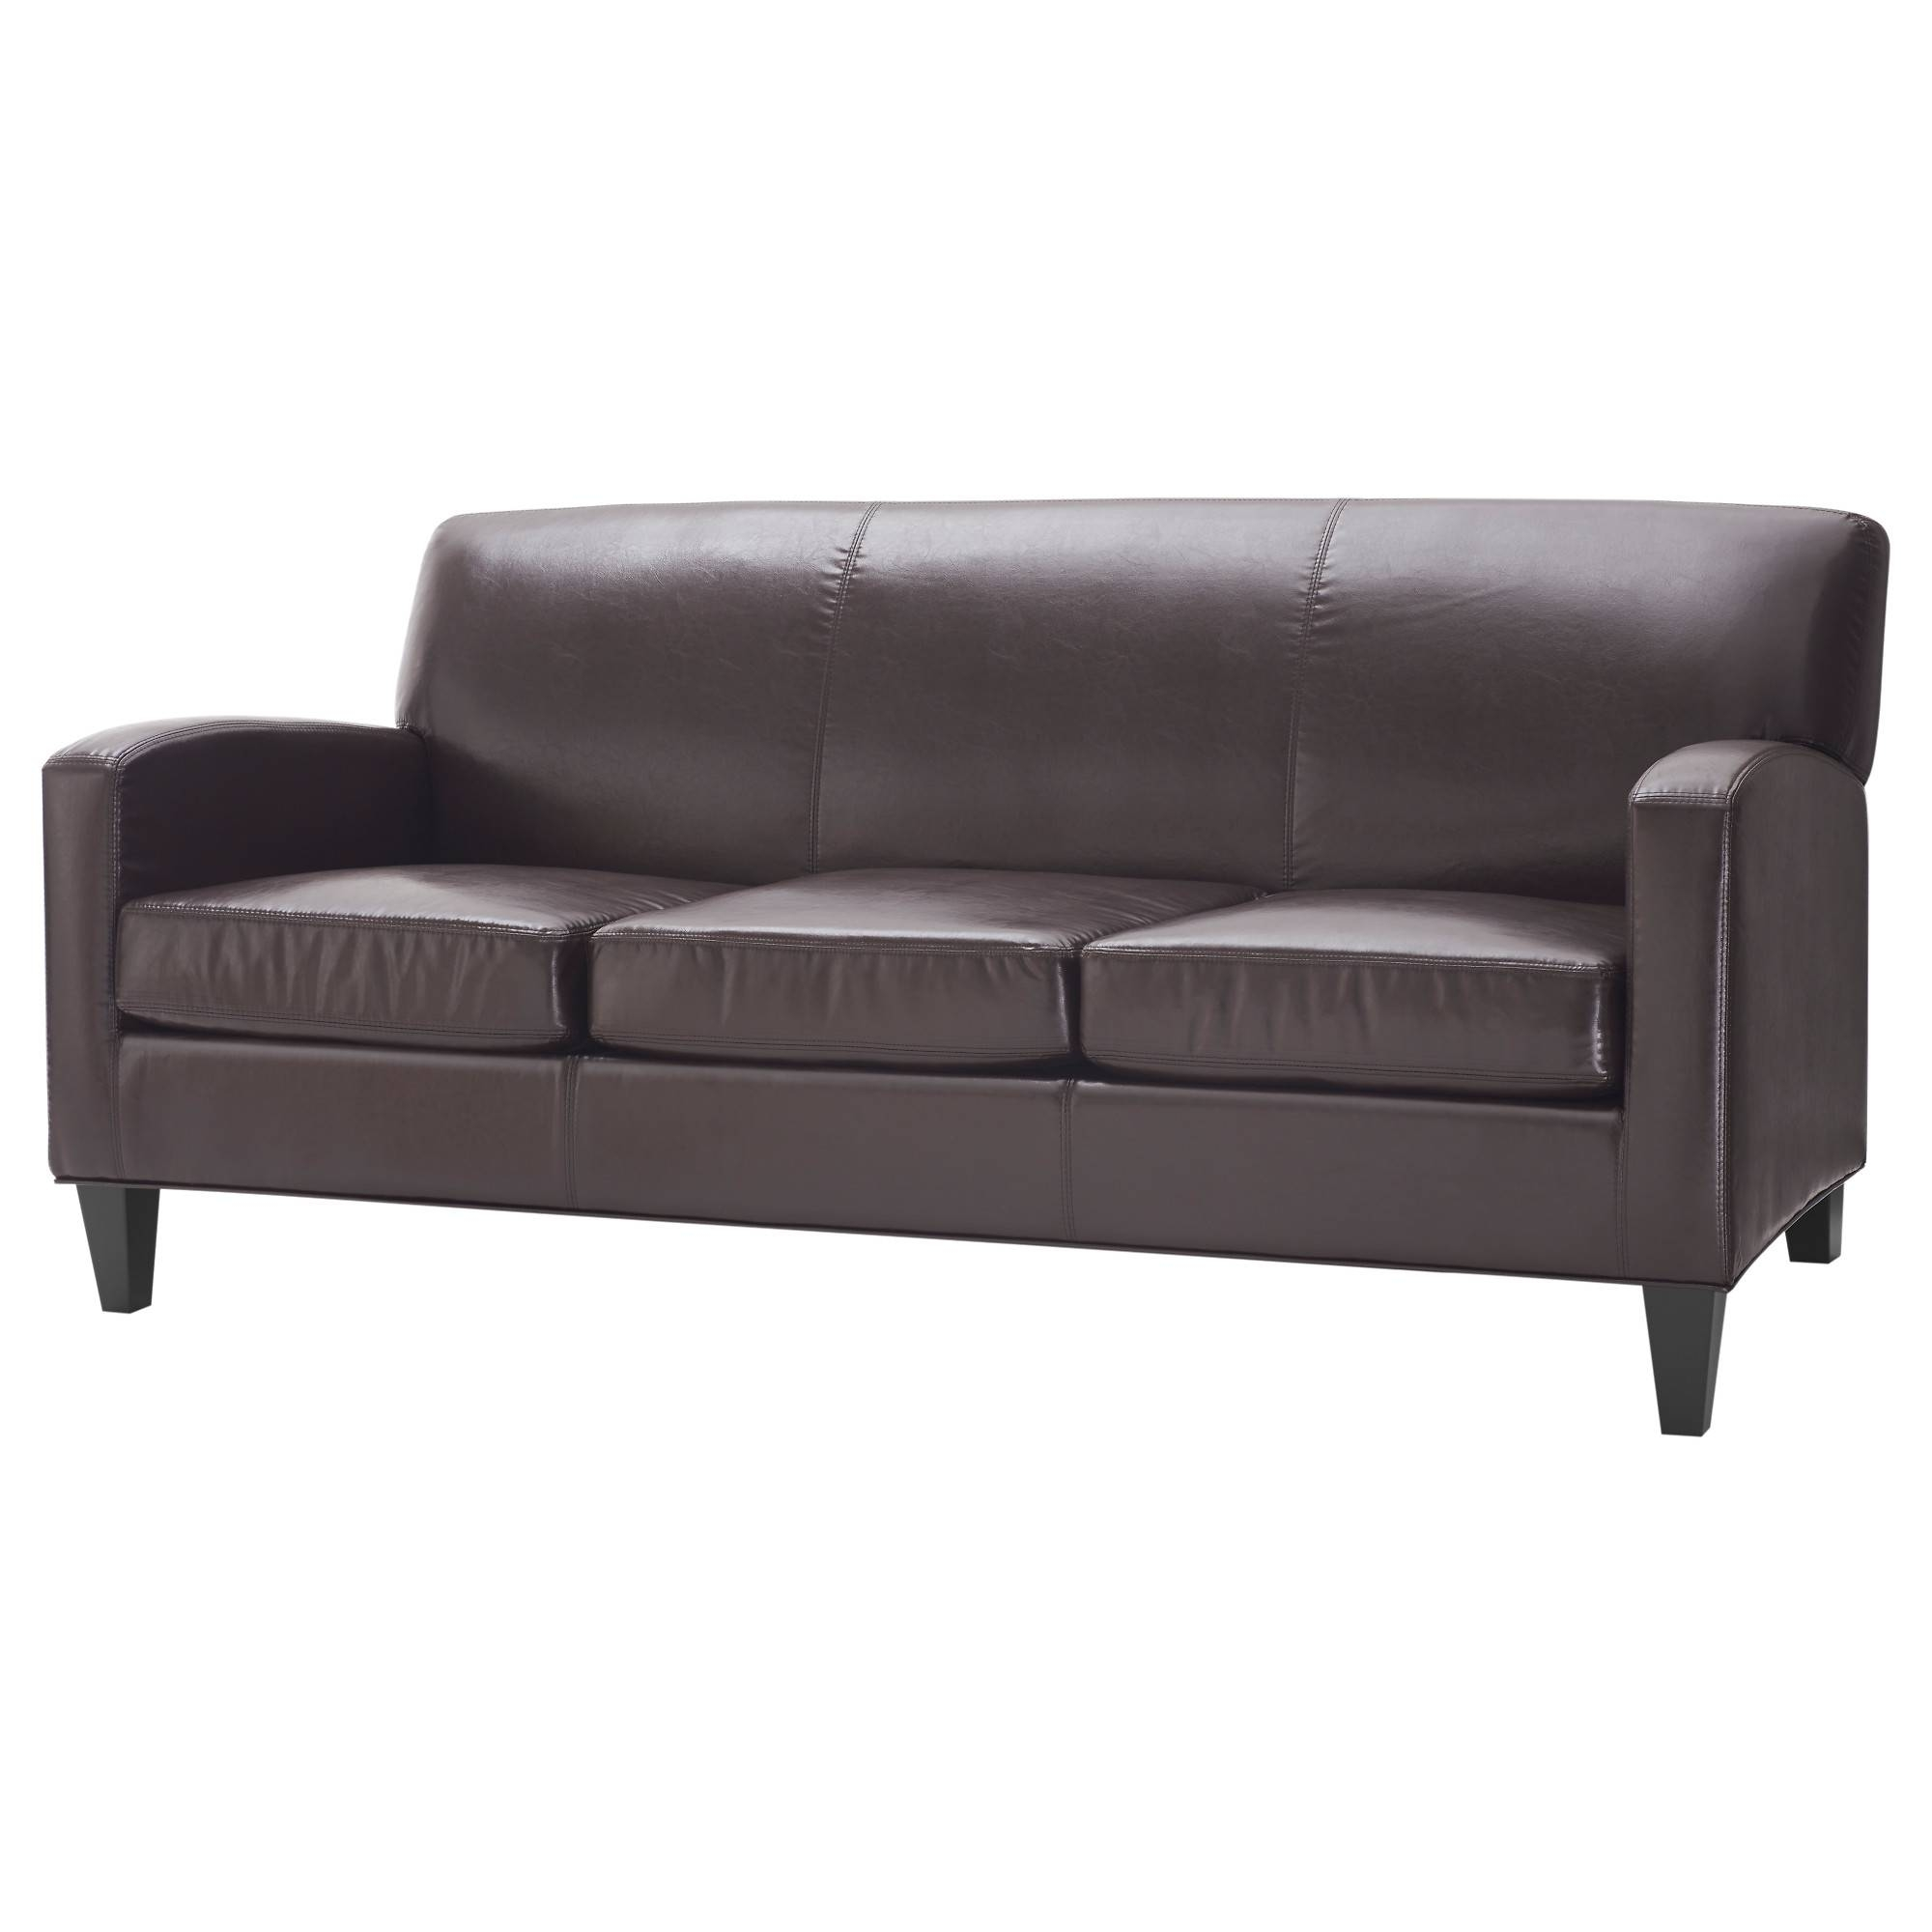 Sofas Center : Modernack Leather Sofa Dobson Sectional Cheapest pertaining to Dobson Sectional Sofa (Image 27 of 30)